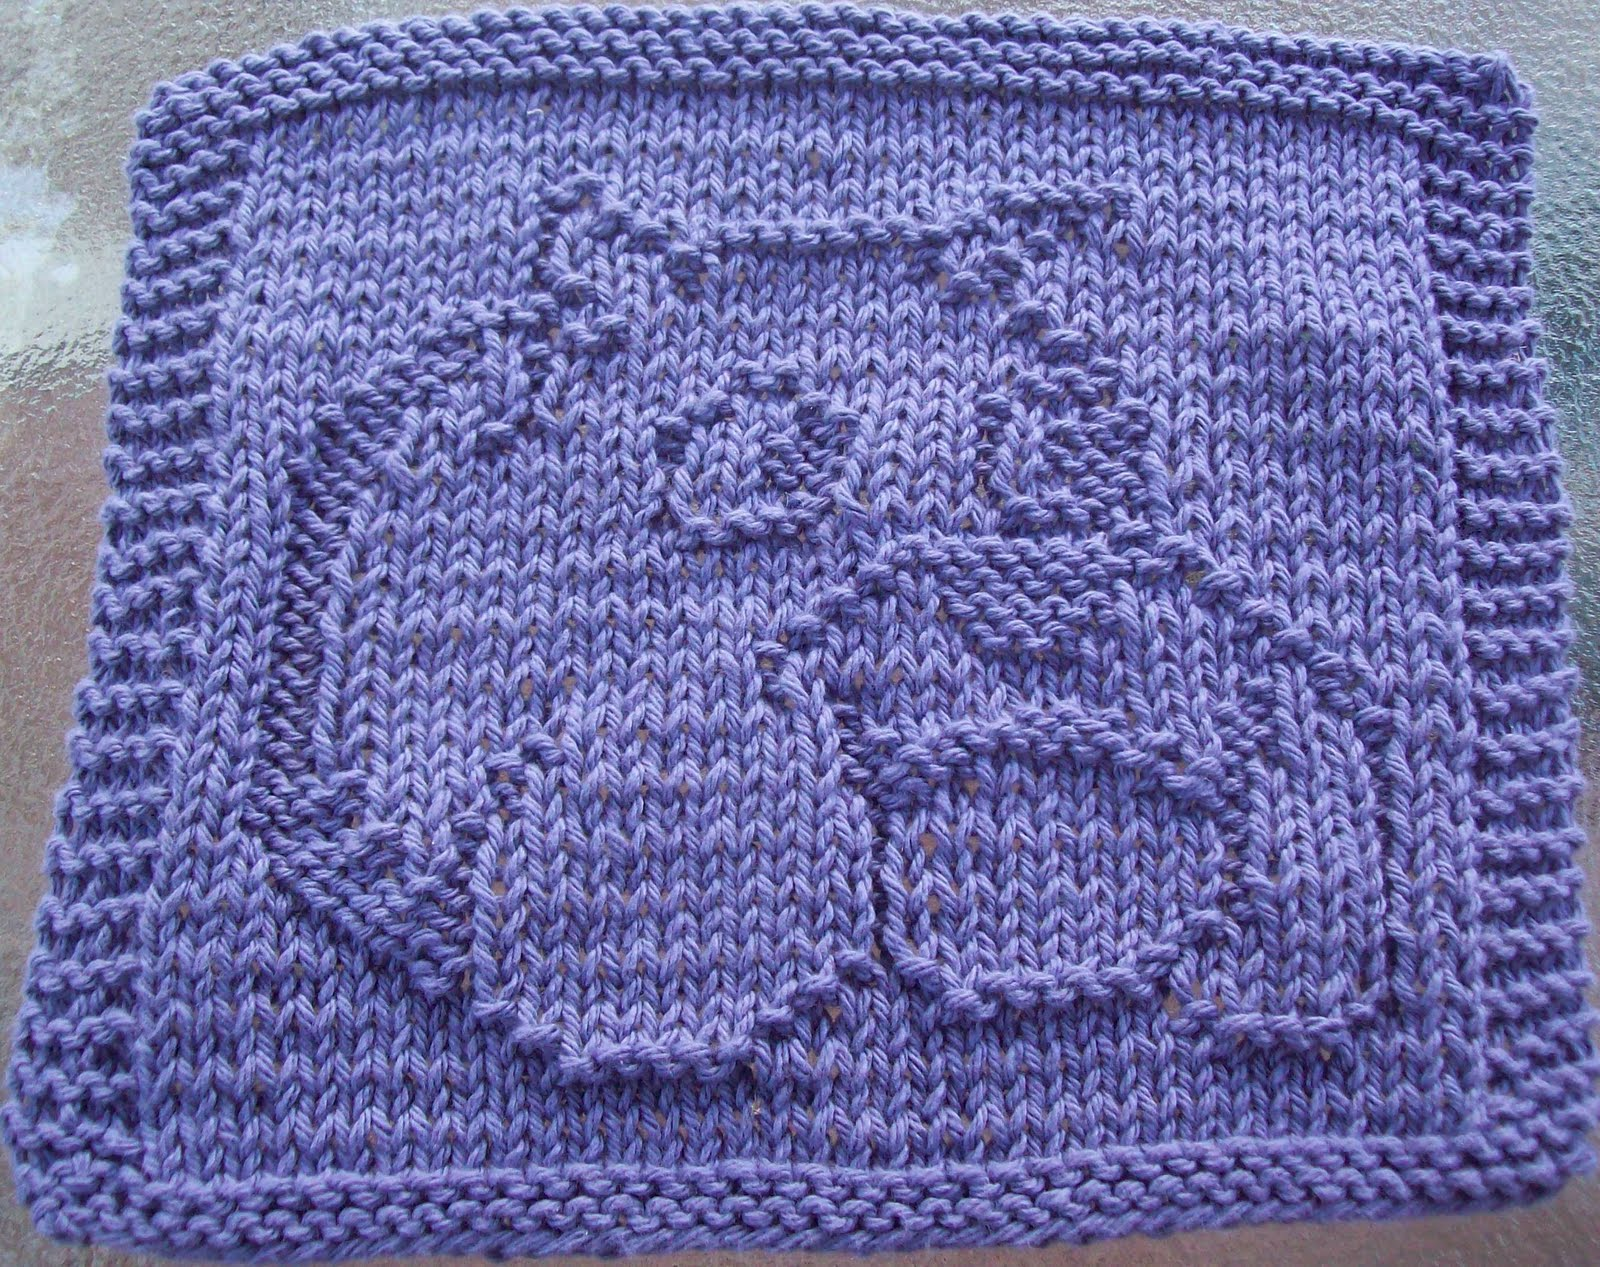 Knit Dishcloths Free Patterns : DigKnitty Designs: Bulldog Knit Dishcloth Pattern